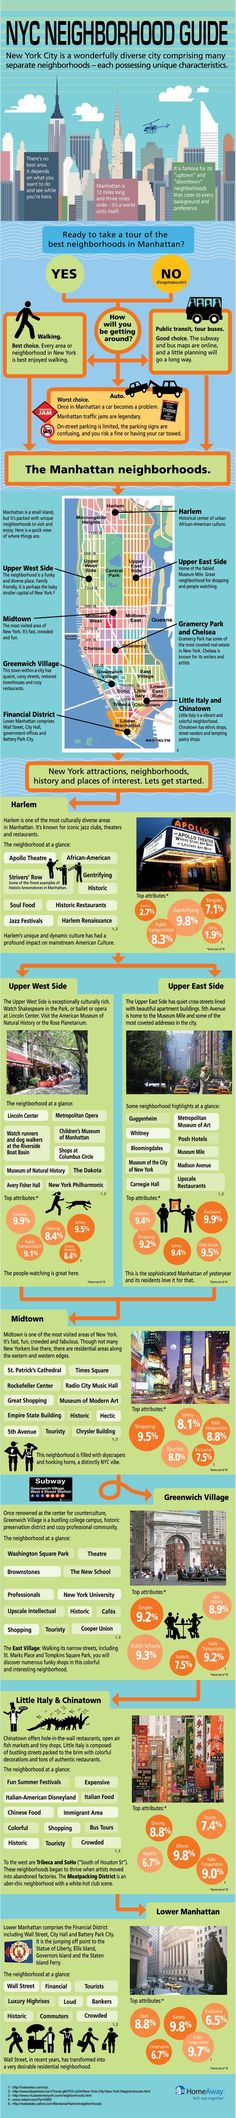 nyc neighborhood guide infographic http://www.homeaway.com/info/travelers/travel-ideas/infographics/nyc-neighborhood-guide;jsessionid=FB7A6CE7541EE3E7AD9B0D1658268D7E